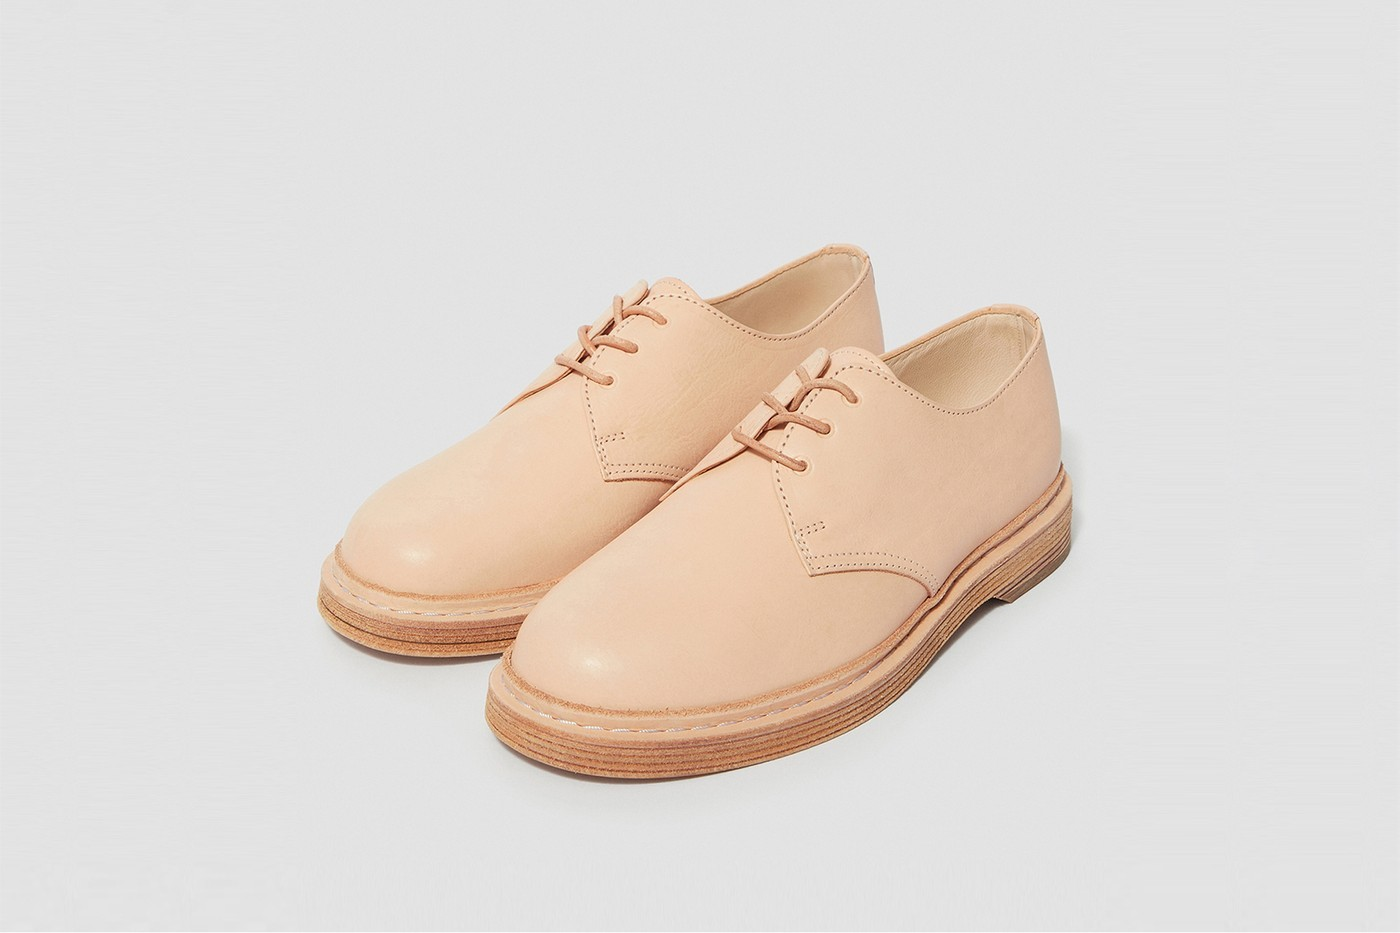 Dr. Martens x Hender Scheme collaboration 1461